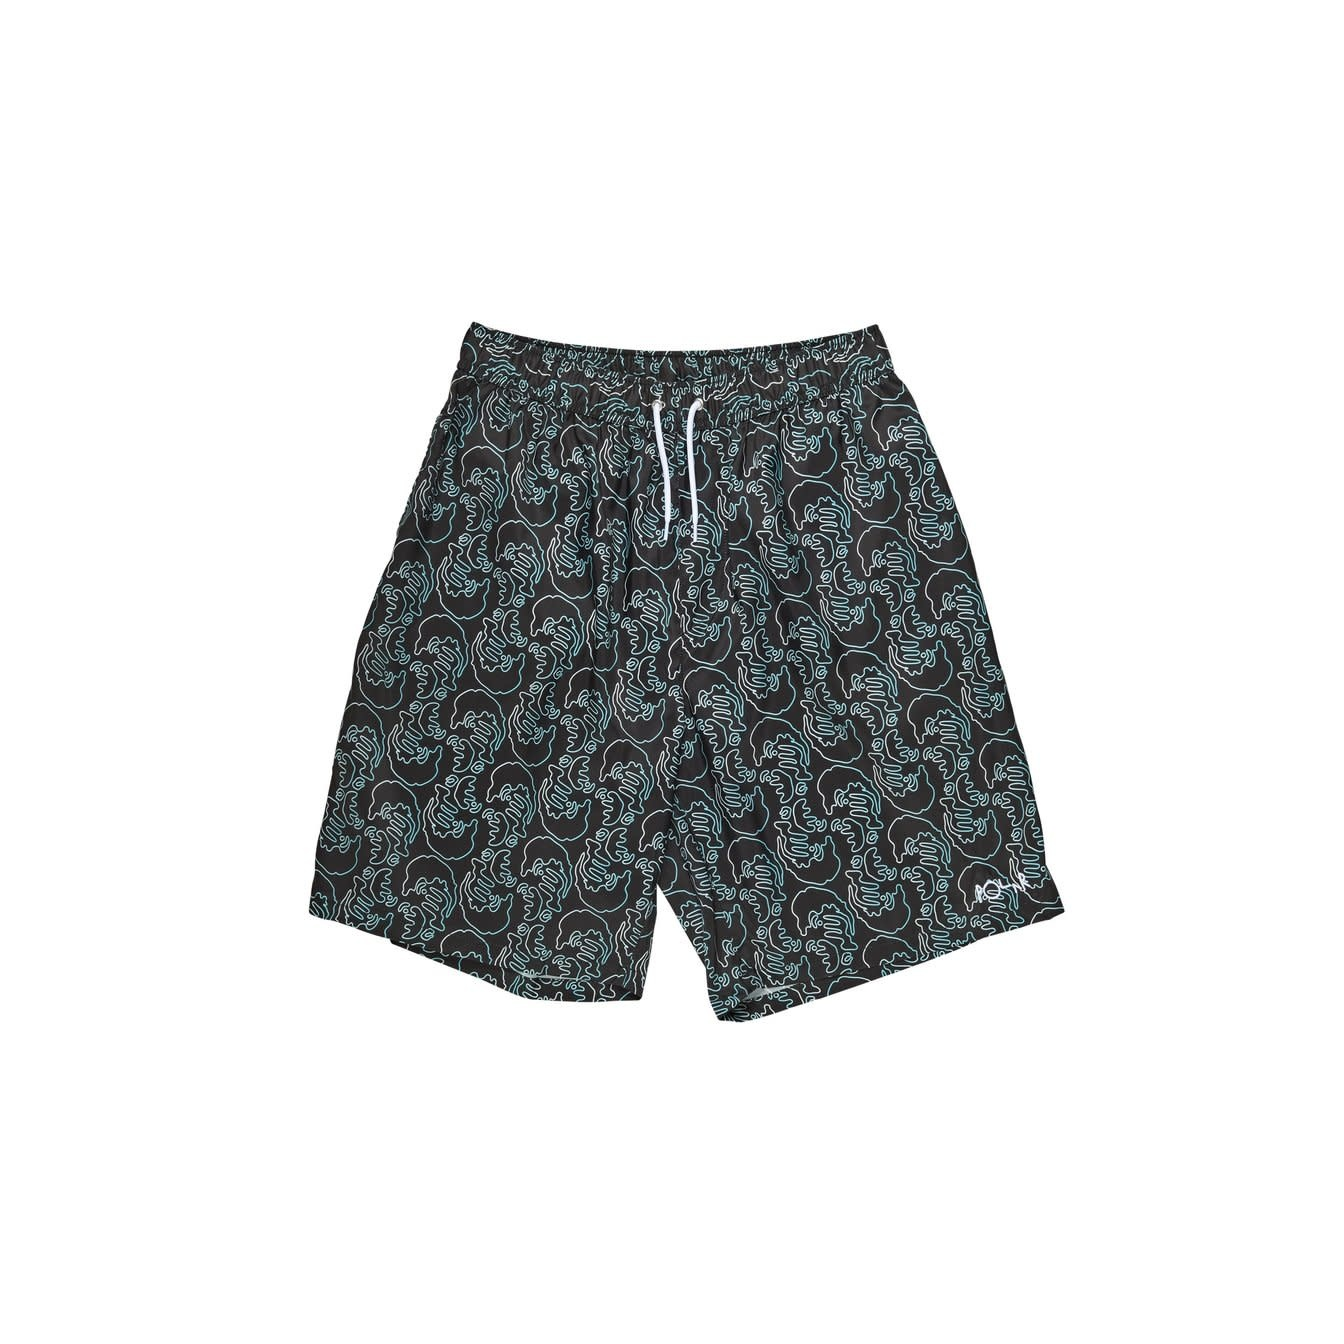 Polar Skate Co. Art Swim Shorts (Faces) Black